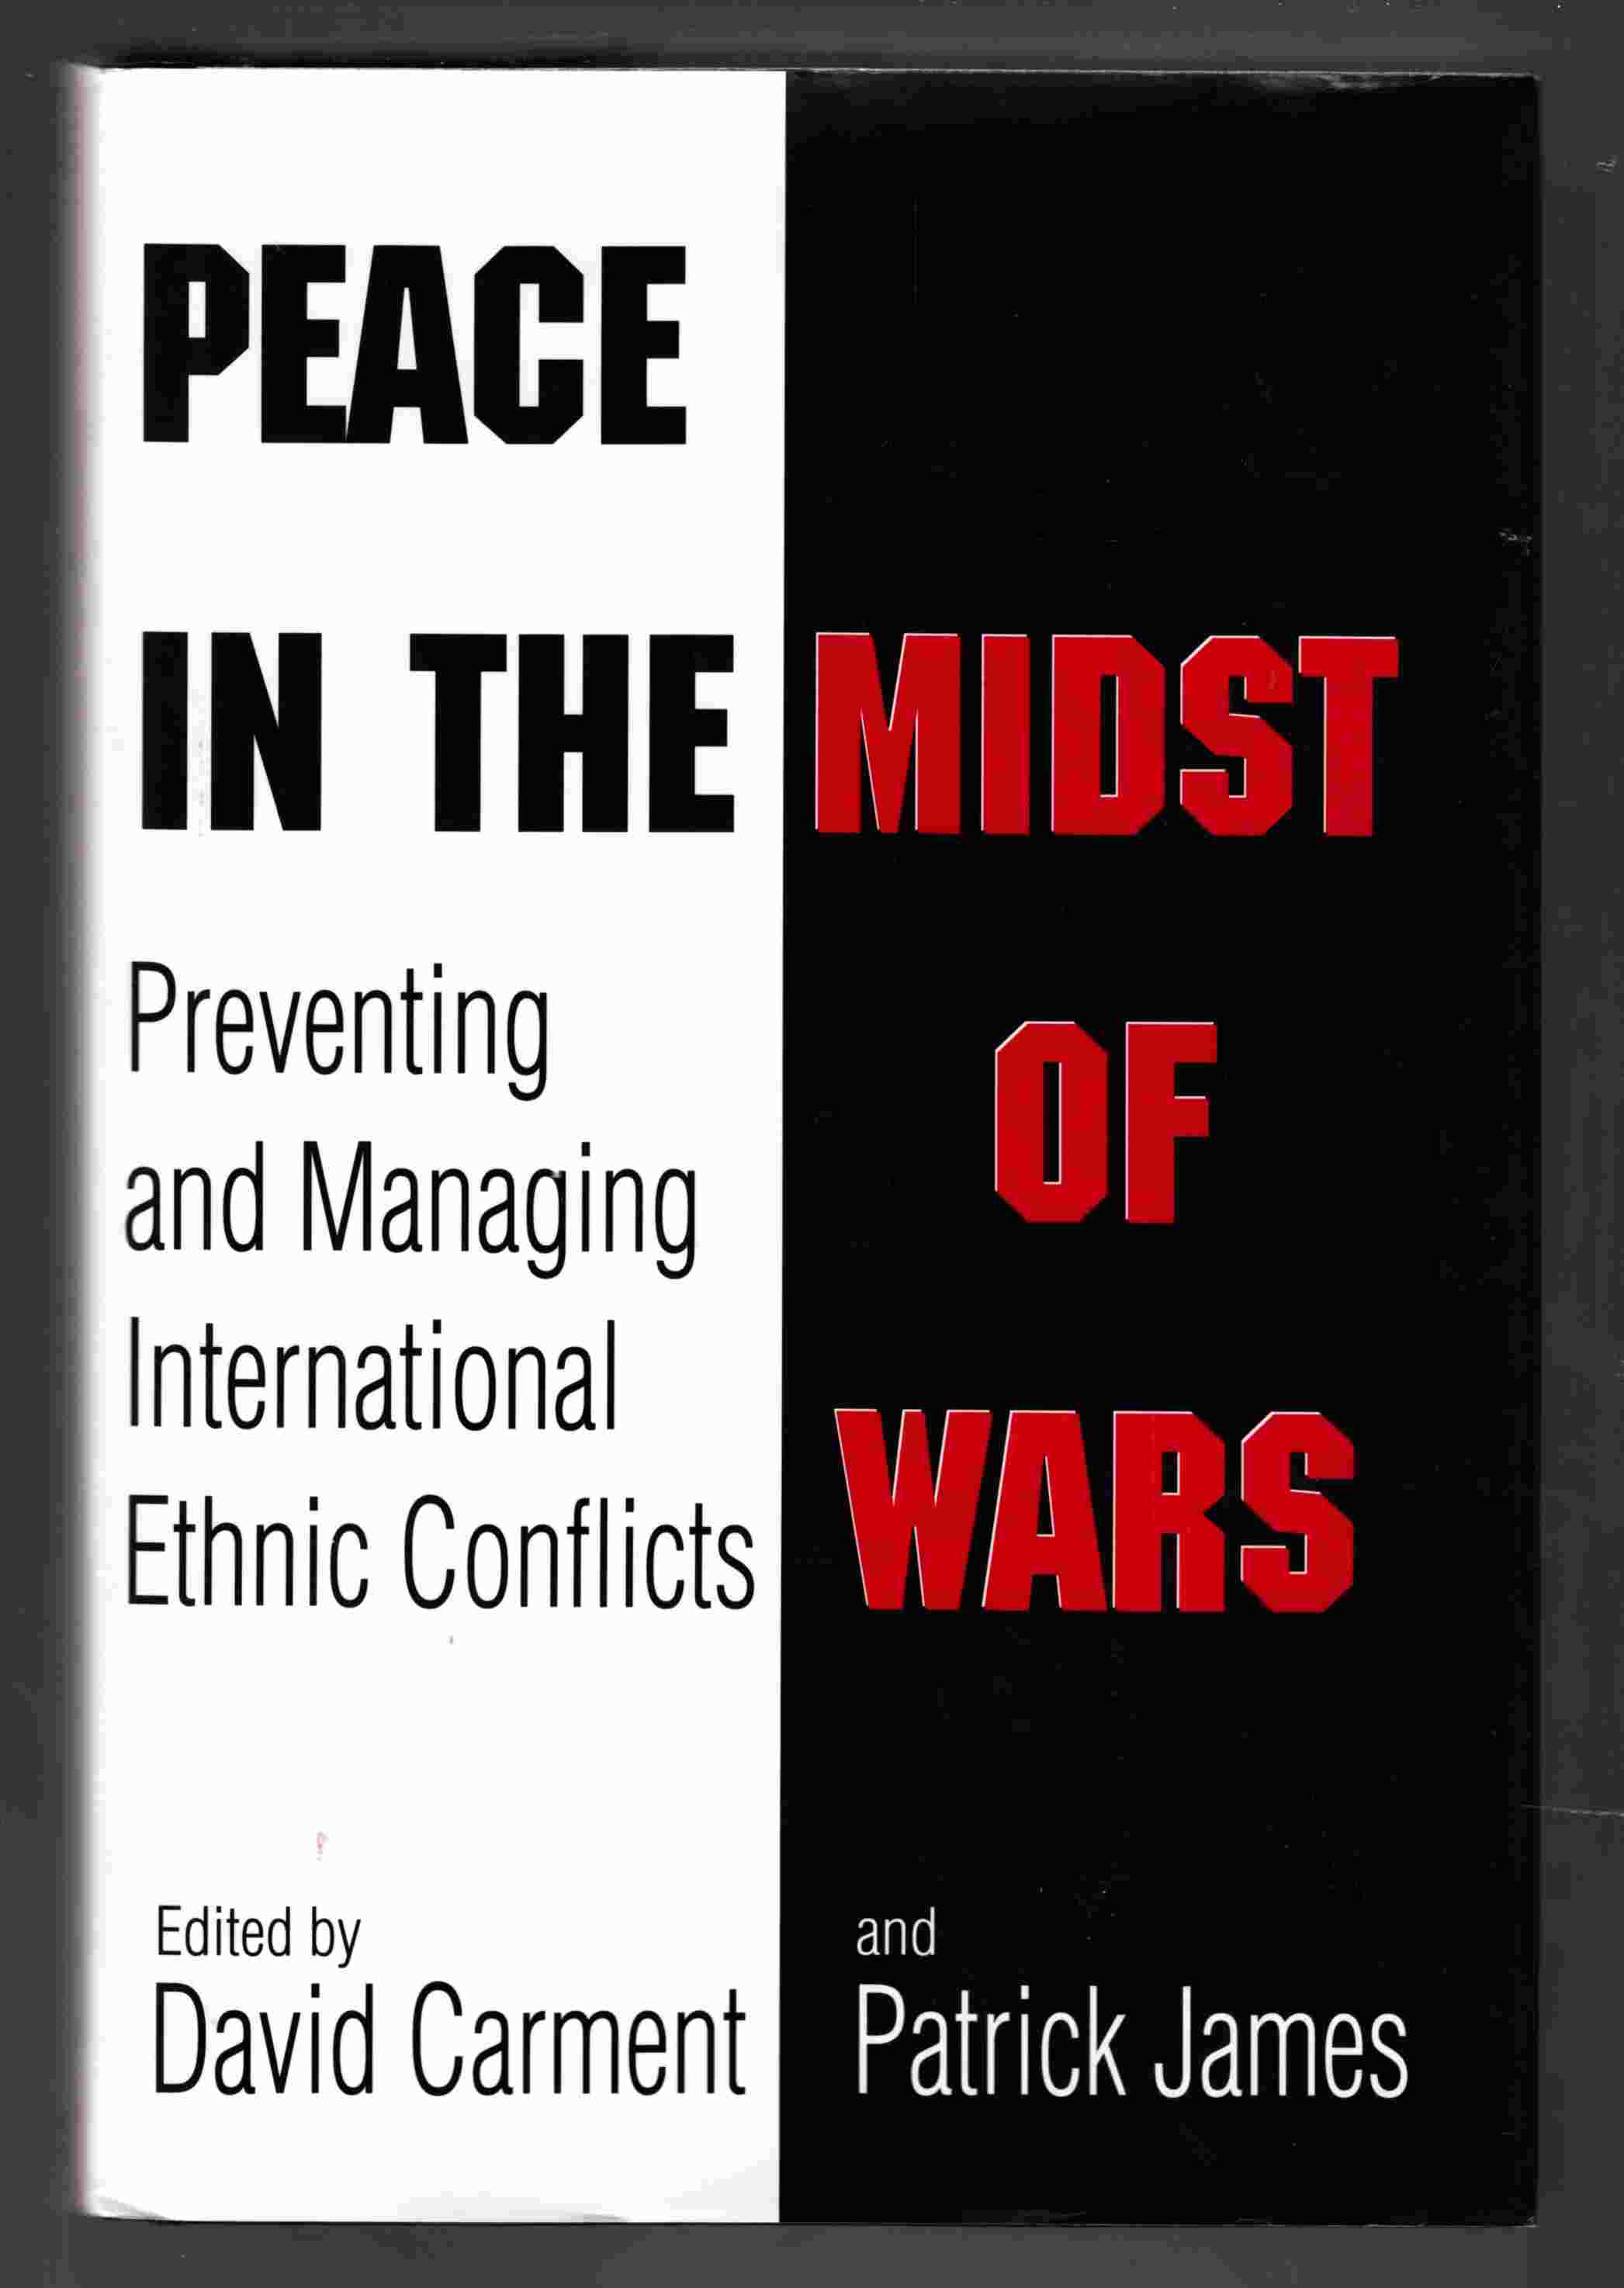 Image for Peace in the Midst of Wars Preventing and Managing International Ethnic Conflicts